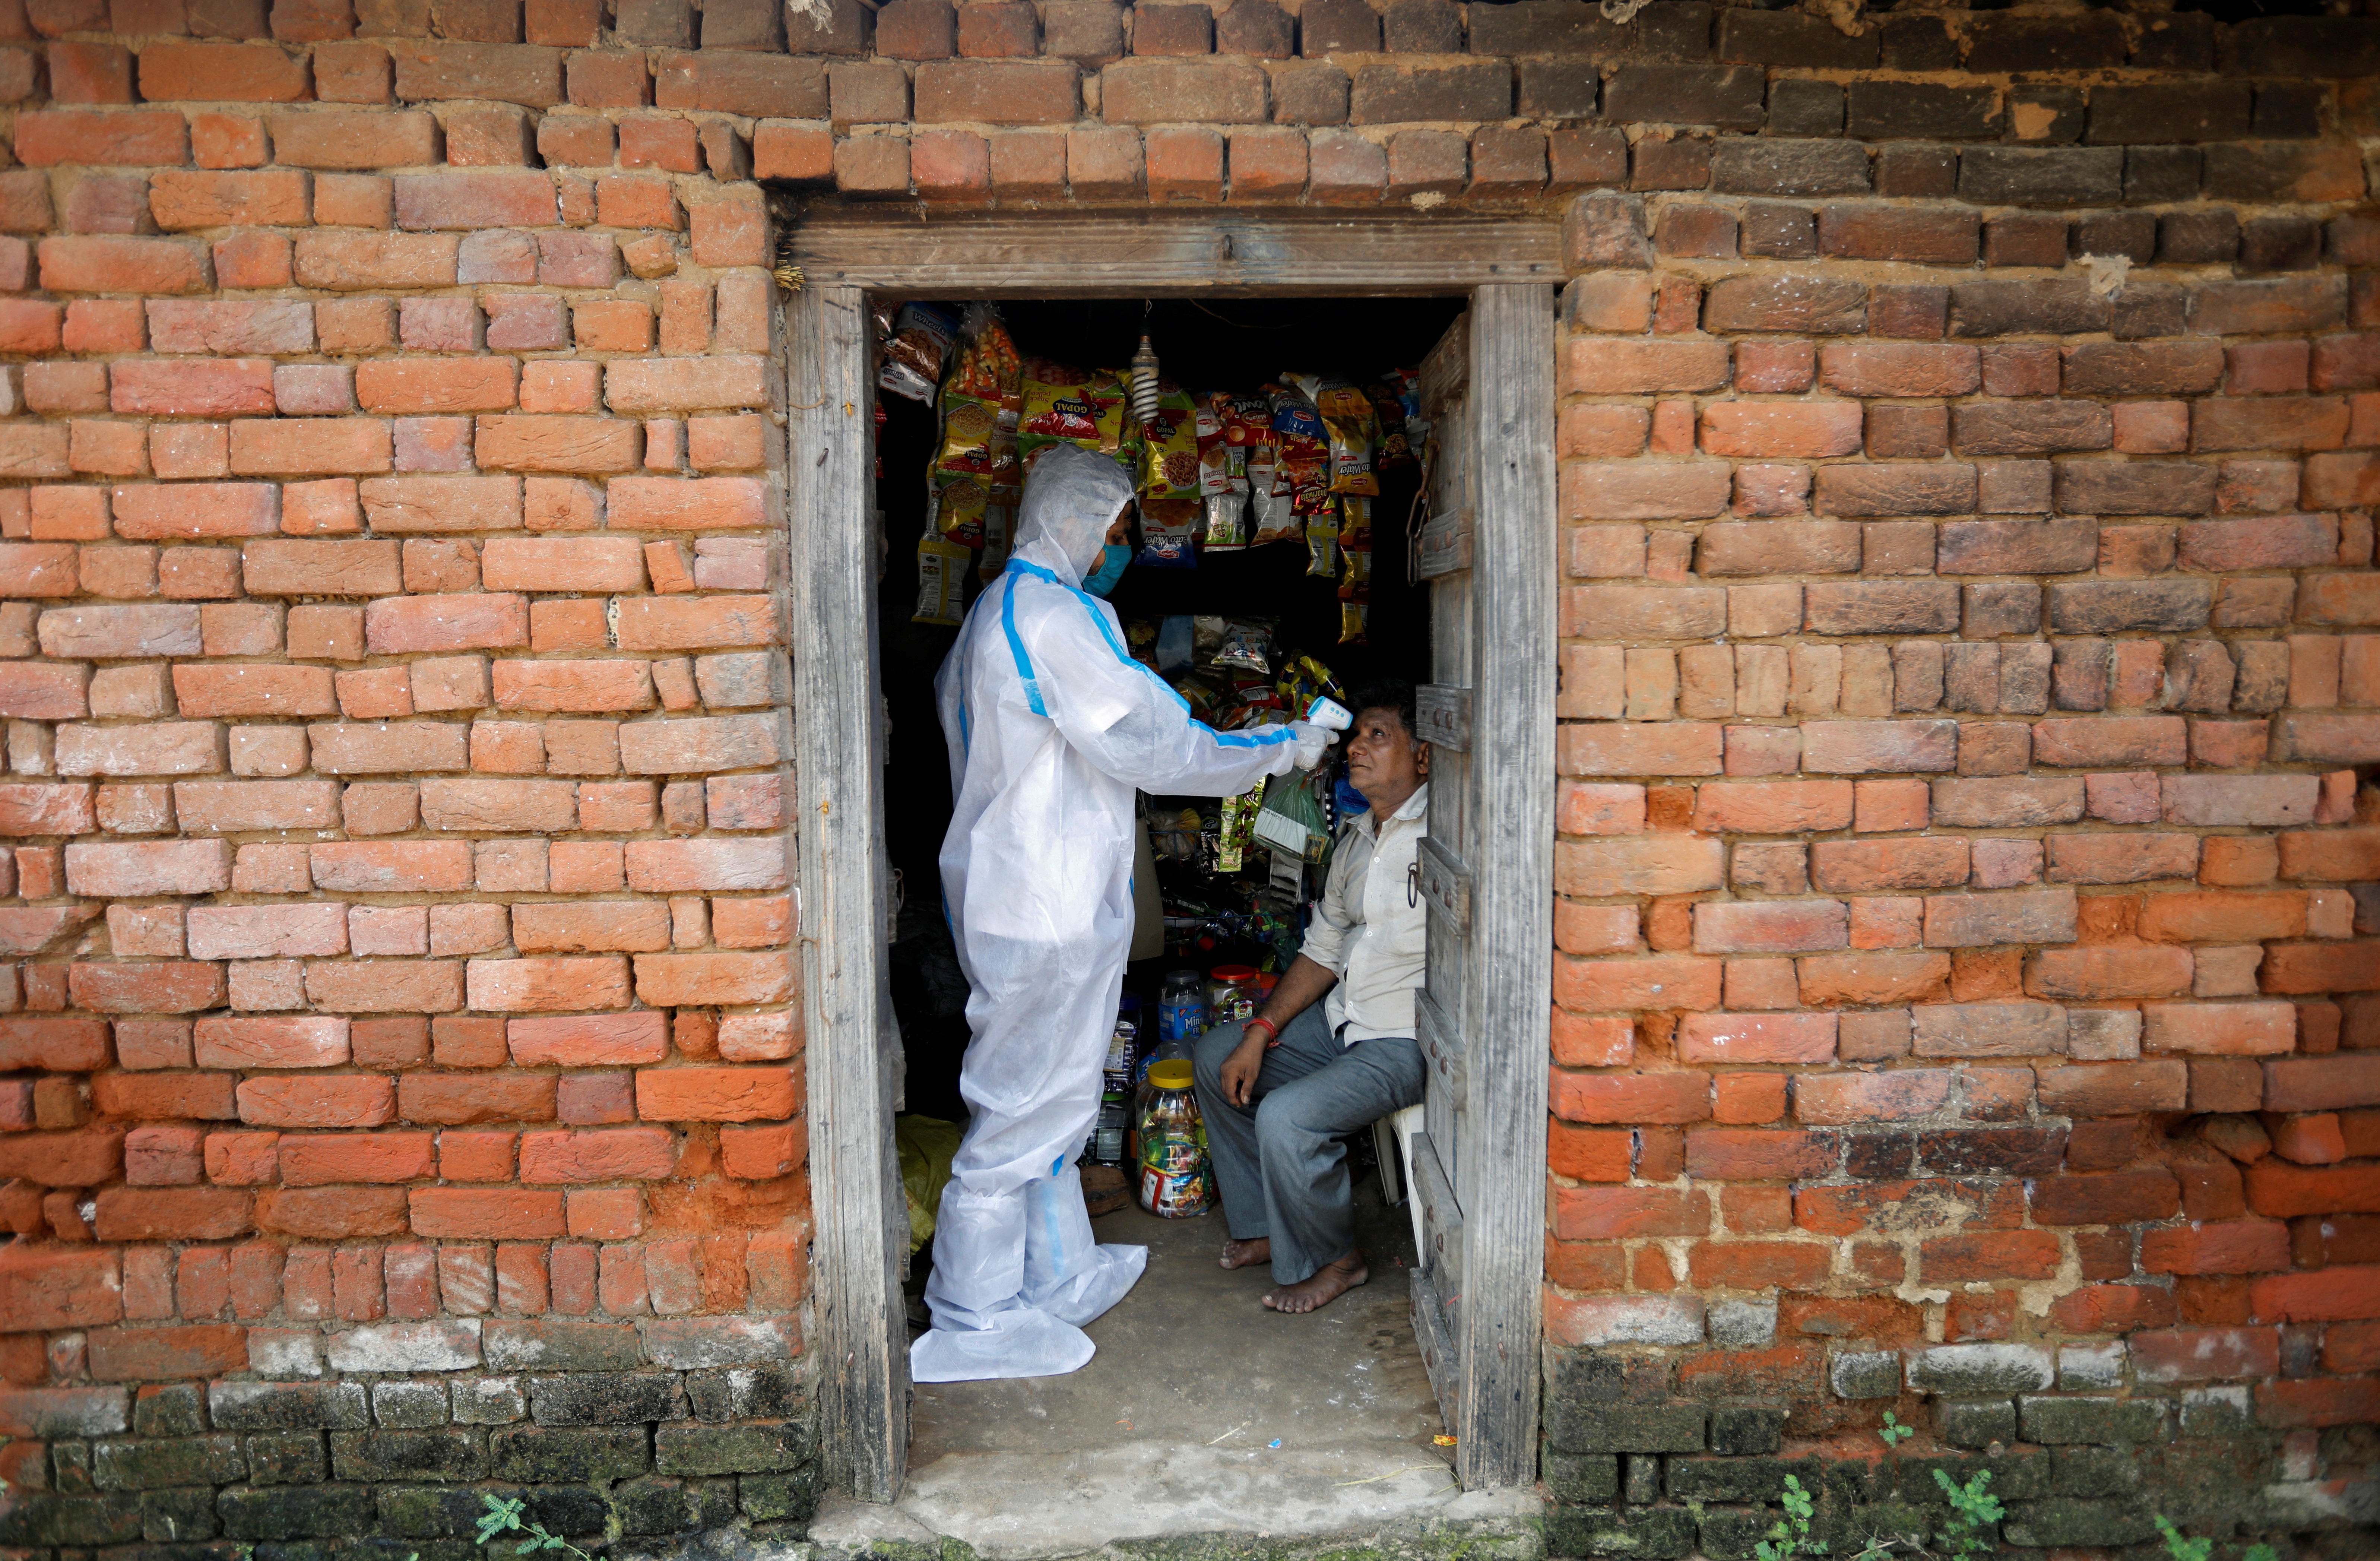 A healthcare worker wearing personal protective equipment (PPE) checks the temperature of a man inside his shop during a door-to-door survey for the coronavirus disease (COVID-19), in Dehgamda village in the western state of Gujarat, India, September 21, 2020